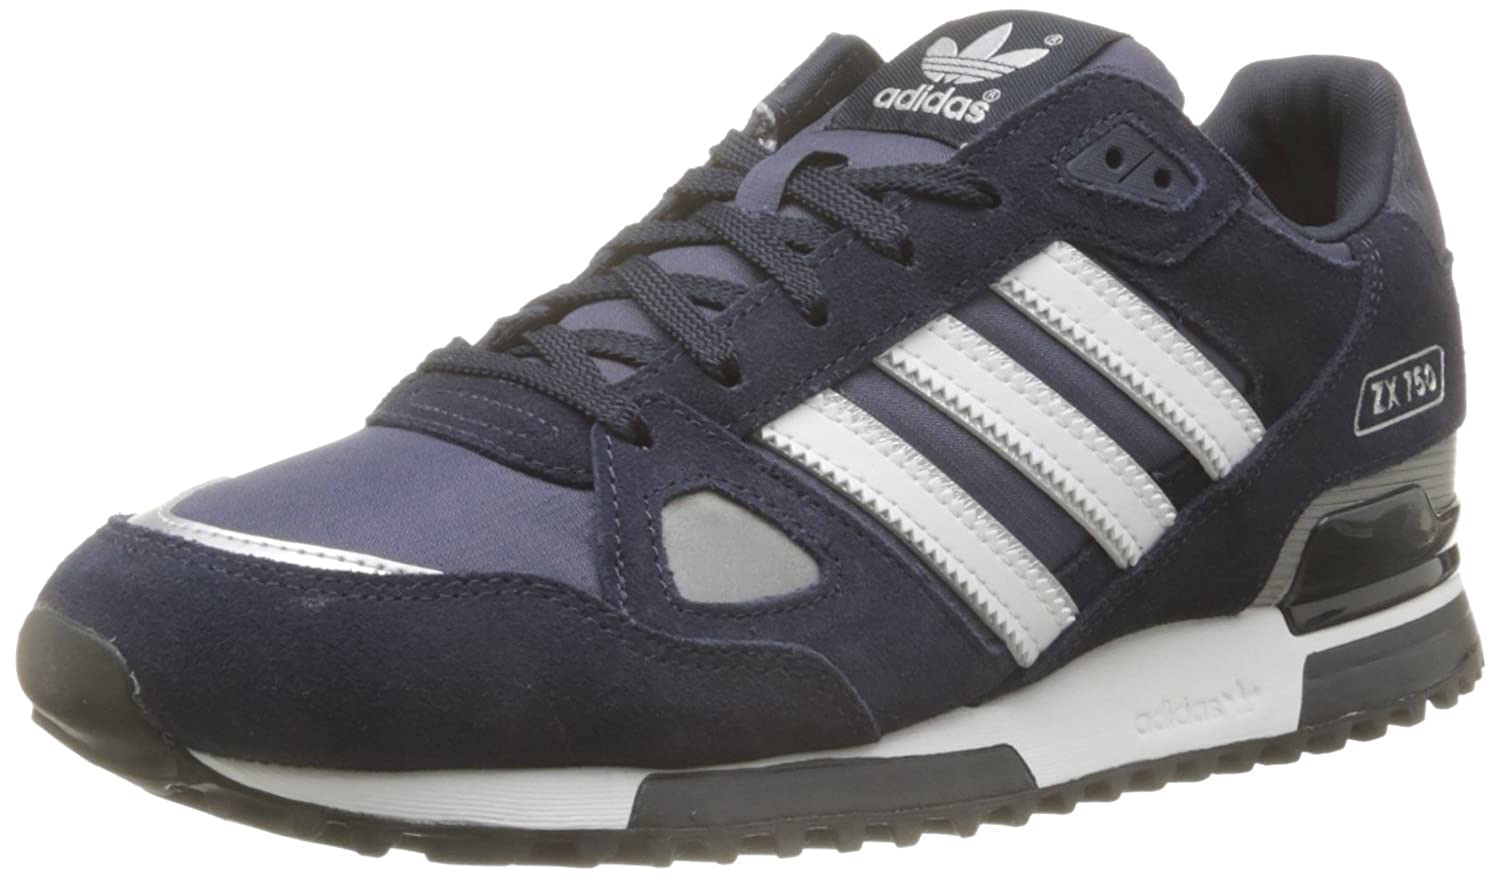 7dadc678821a5 Adidas Originals ZX 750 Sports Casual Shoes Men s Trainers  Amazon.co.uk   Shoes   Bags